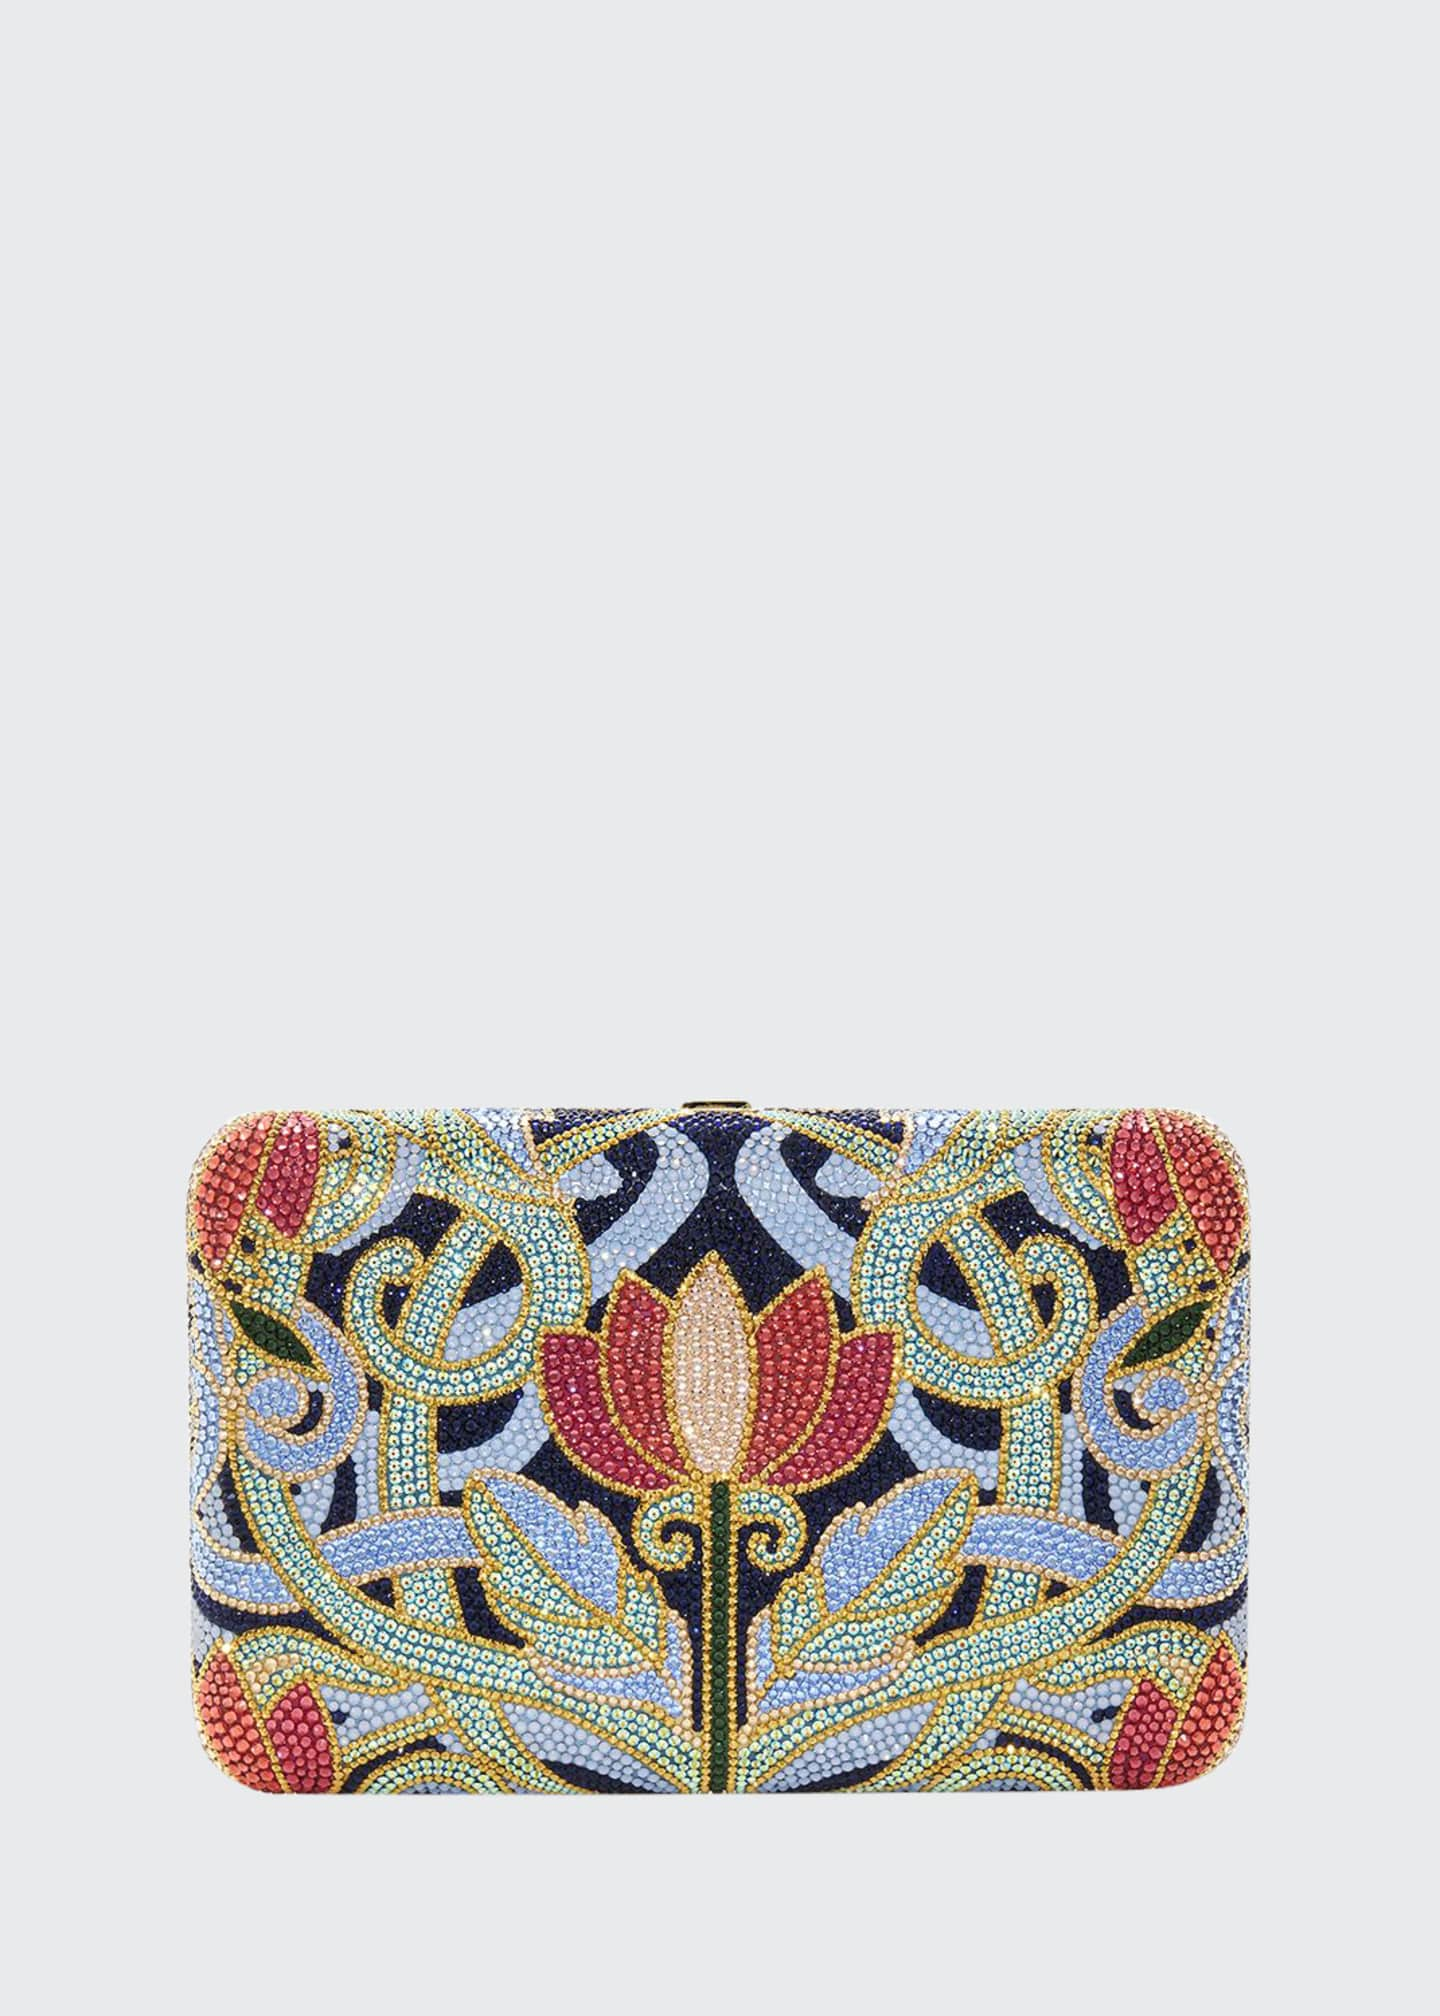 Judith Leiber Couture Seamless Lotus Clutch Bag